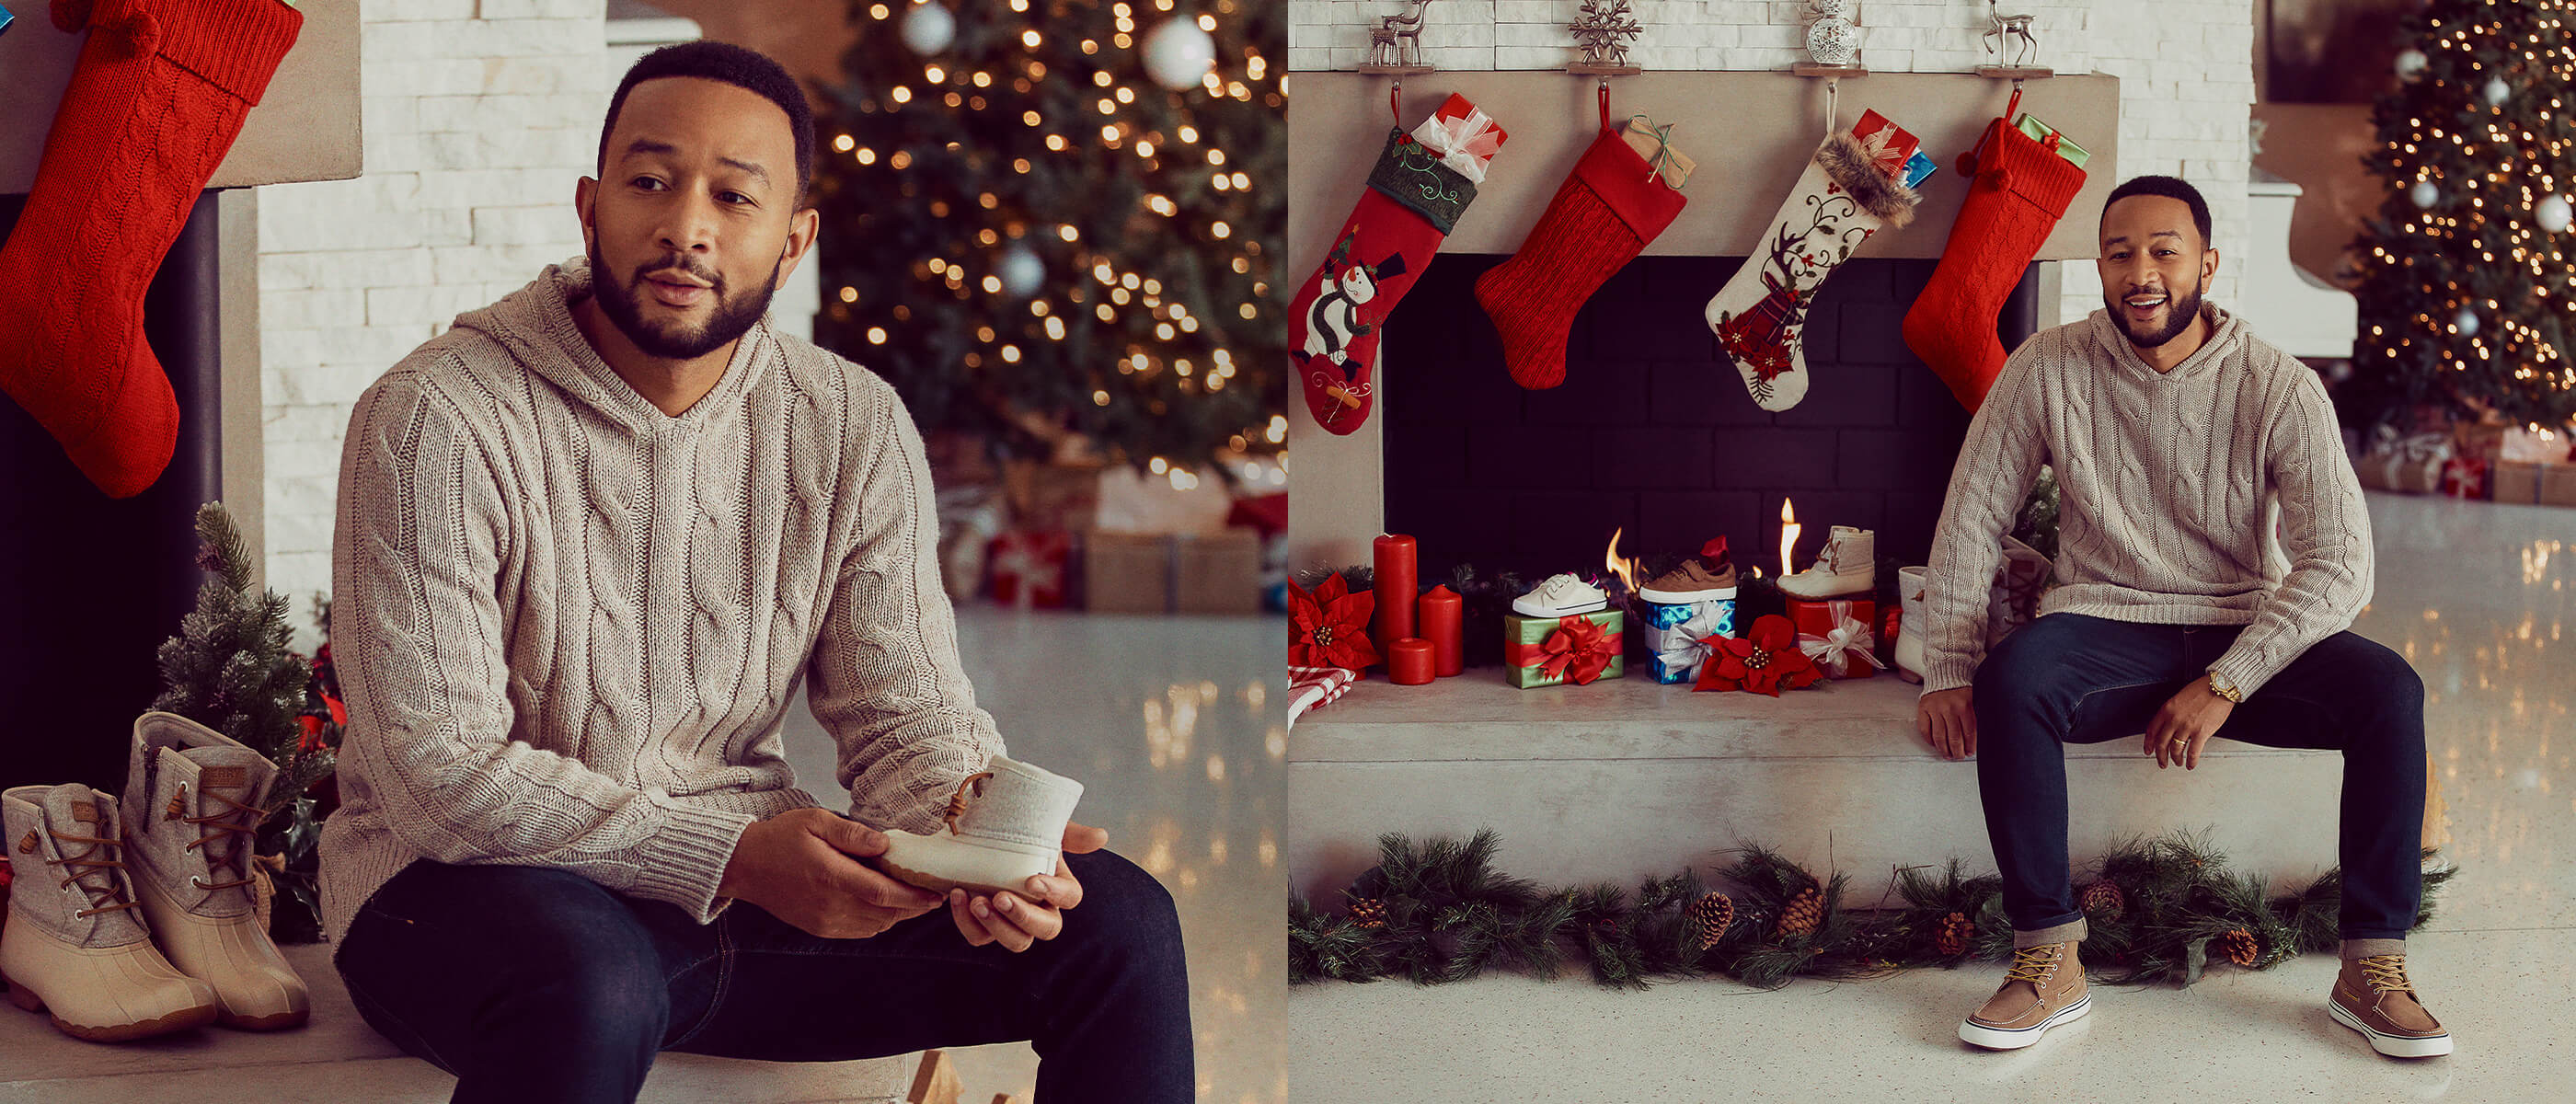 John Legend roasting by an open fire. He seems jolly.